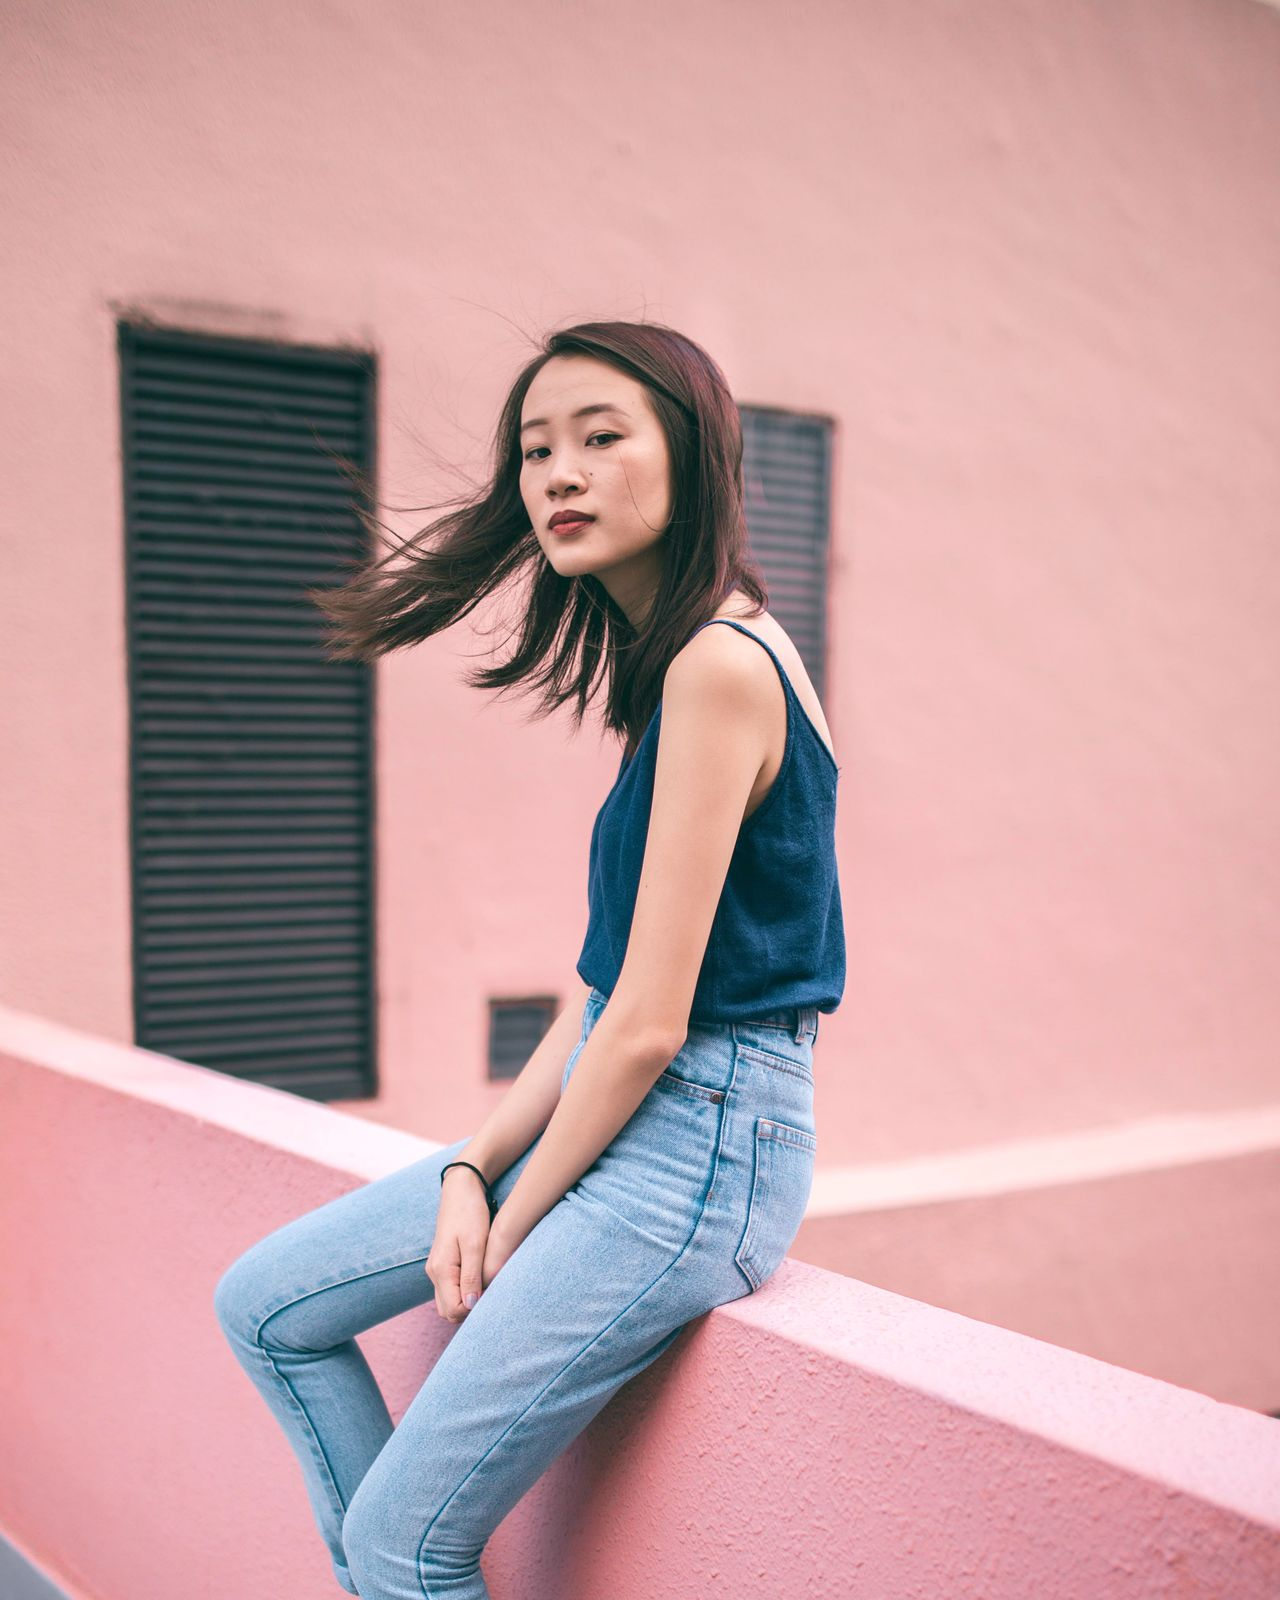 do you dream of me, when i dream of you? Portrait Portrait Of A Woman Portrait Of A Girl Portrait Photography Pastel Pink Young Women Women Of EyeEm Women Who Inspire You Singapore TakeoverContrast Wind Freedom Carefree The Week On EyeEm Millennial Pink The Portraitist - 2017 EyeEm Awards